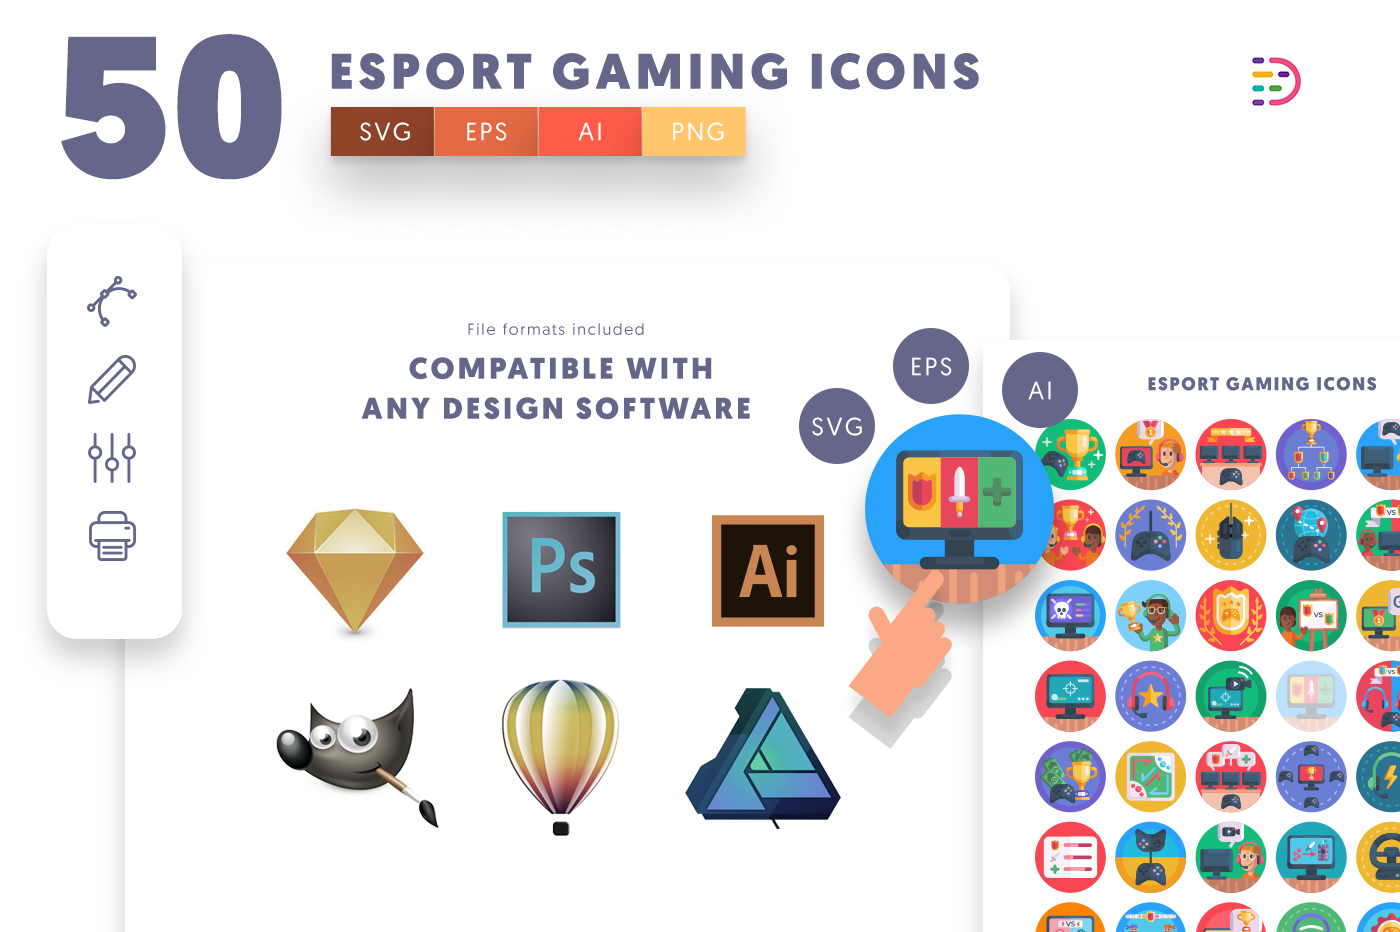 full vector 50 Esport Gaming Icons EPS, SVG, PNG